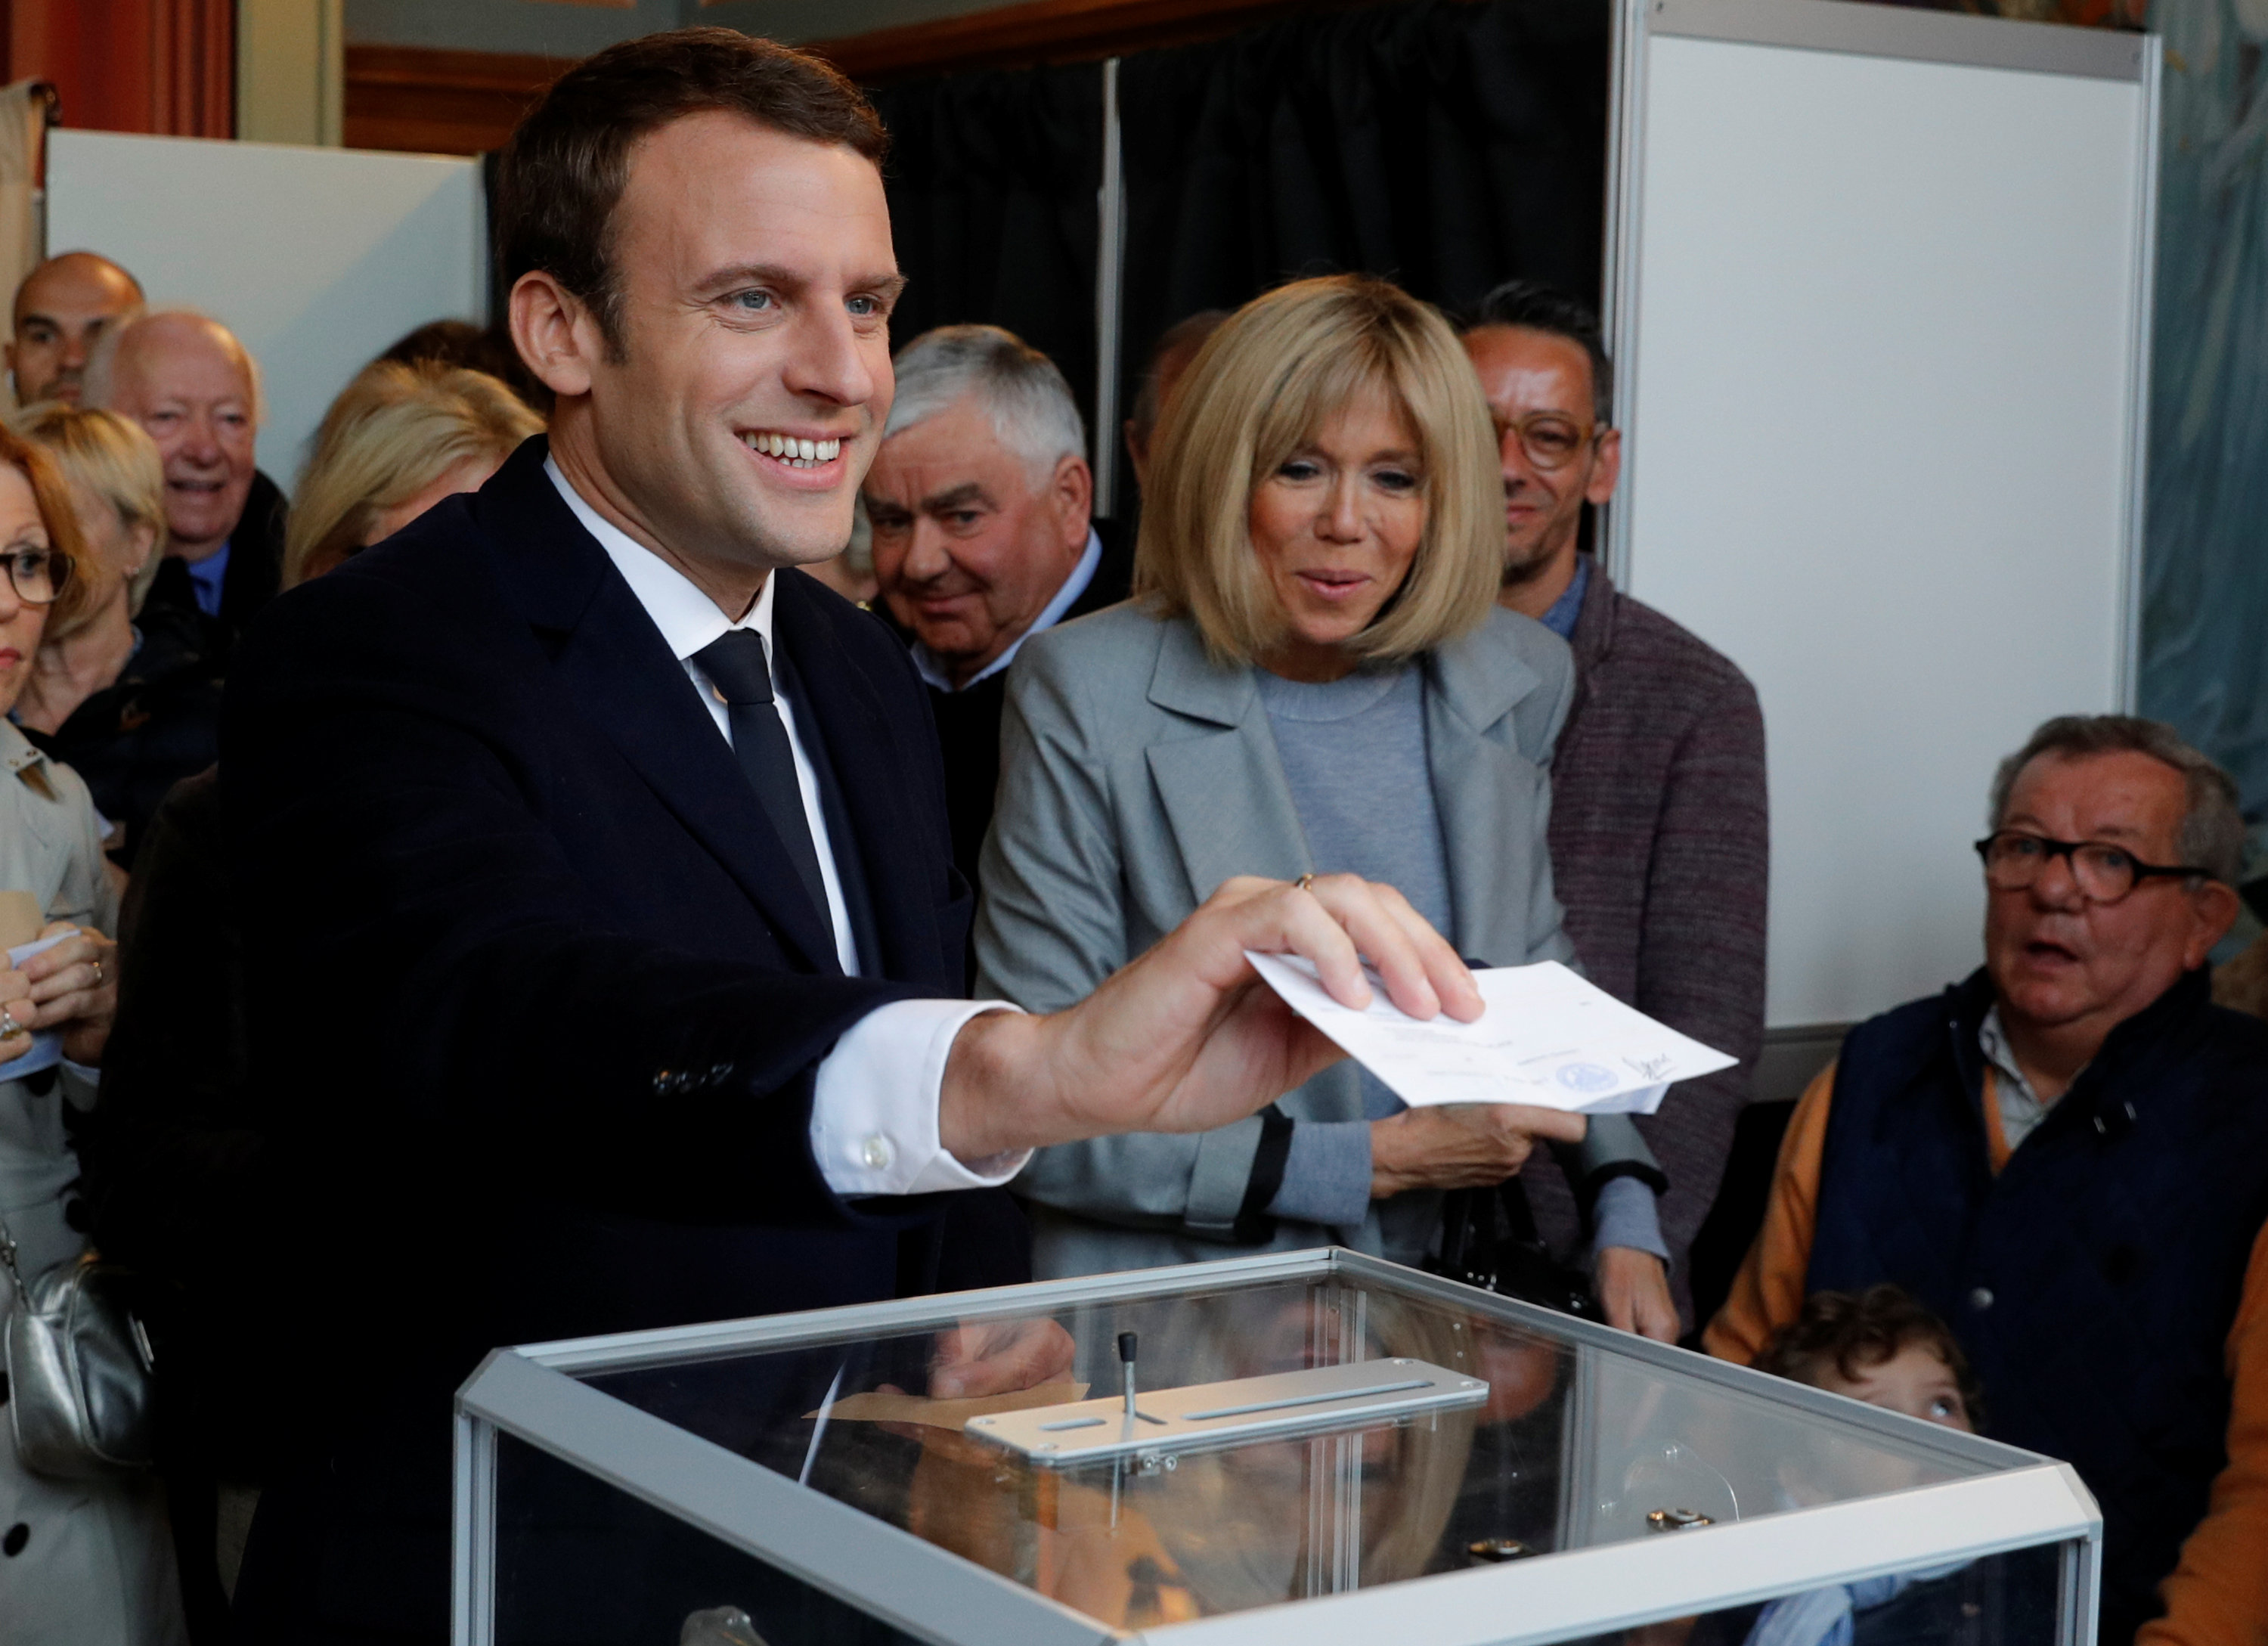 Emmanuel Macron (L), head of the political movement En Marche !, or Onwards !, and candidate for the 2017 French presidential election, casts his ballot in the first round of 2017 French presidential election at a polling station in Le Touquet, northern France on April 23, 2017. (REUTERS/Philippe Wojazer)